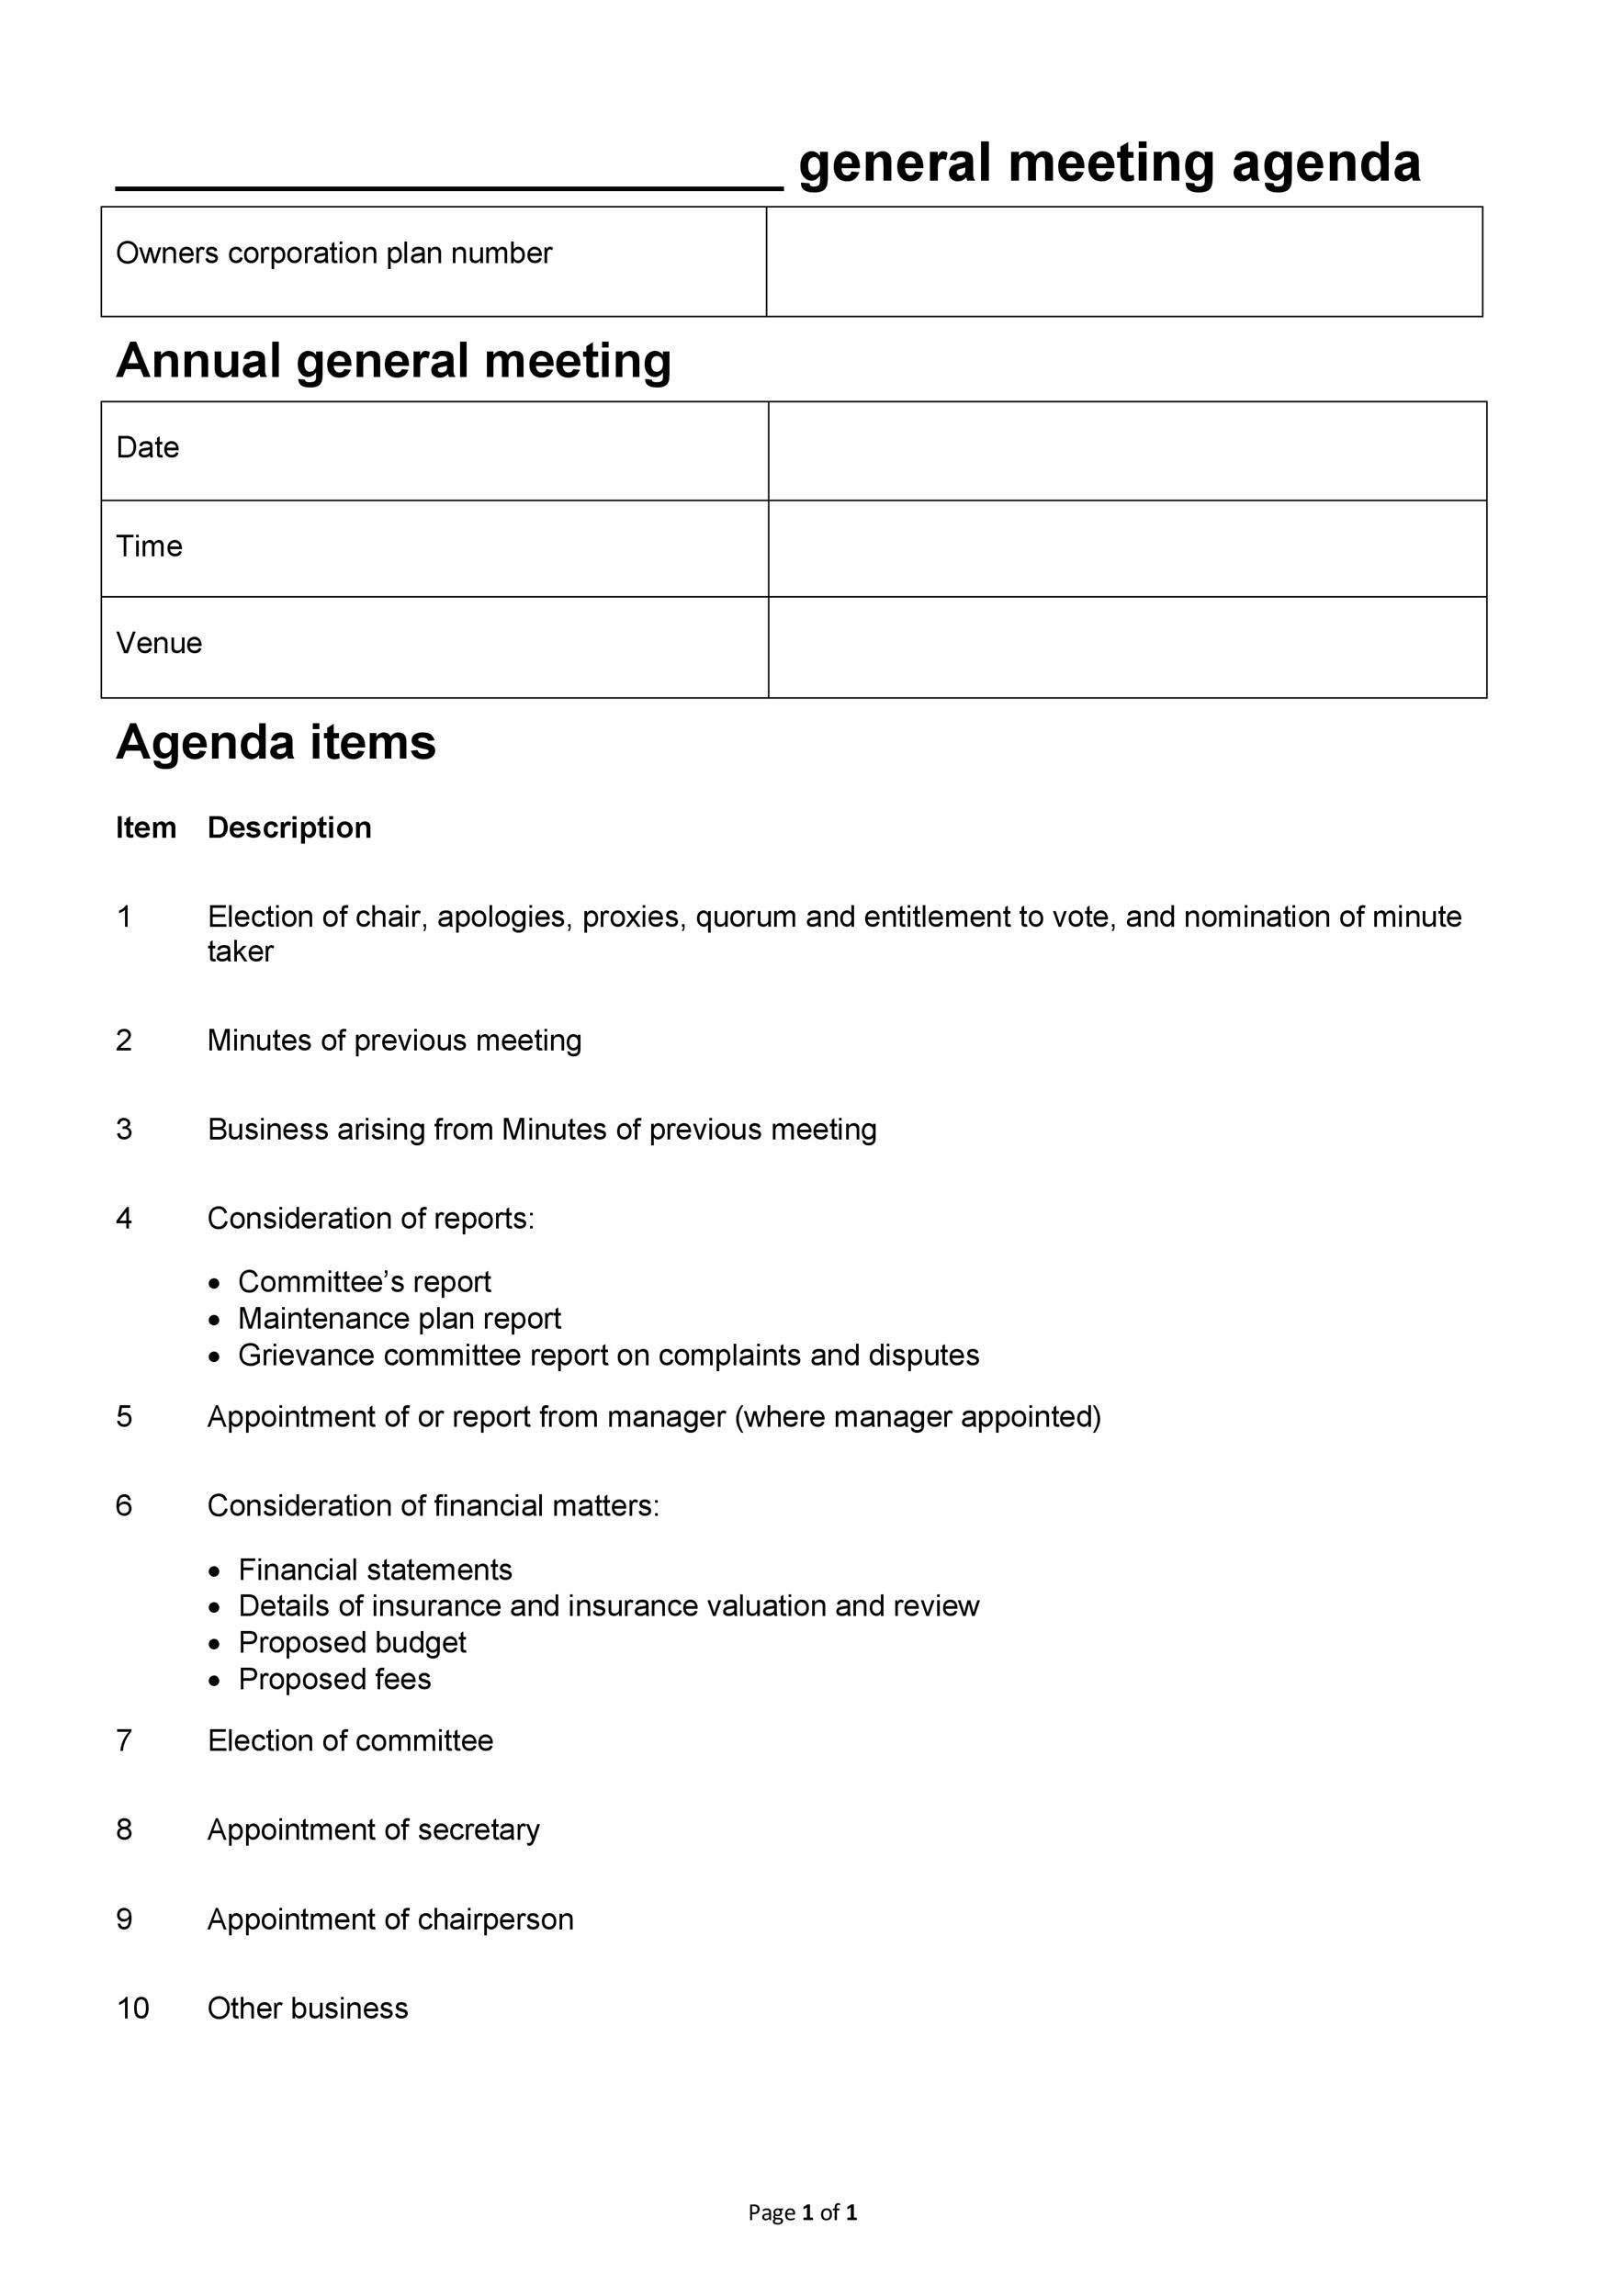 46 Effective Meeting Agenda Templates - Template Lab - blank meeting agenda template